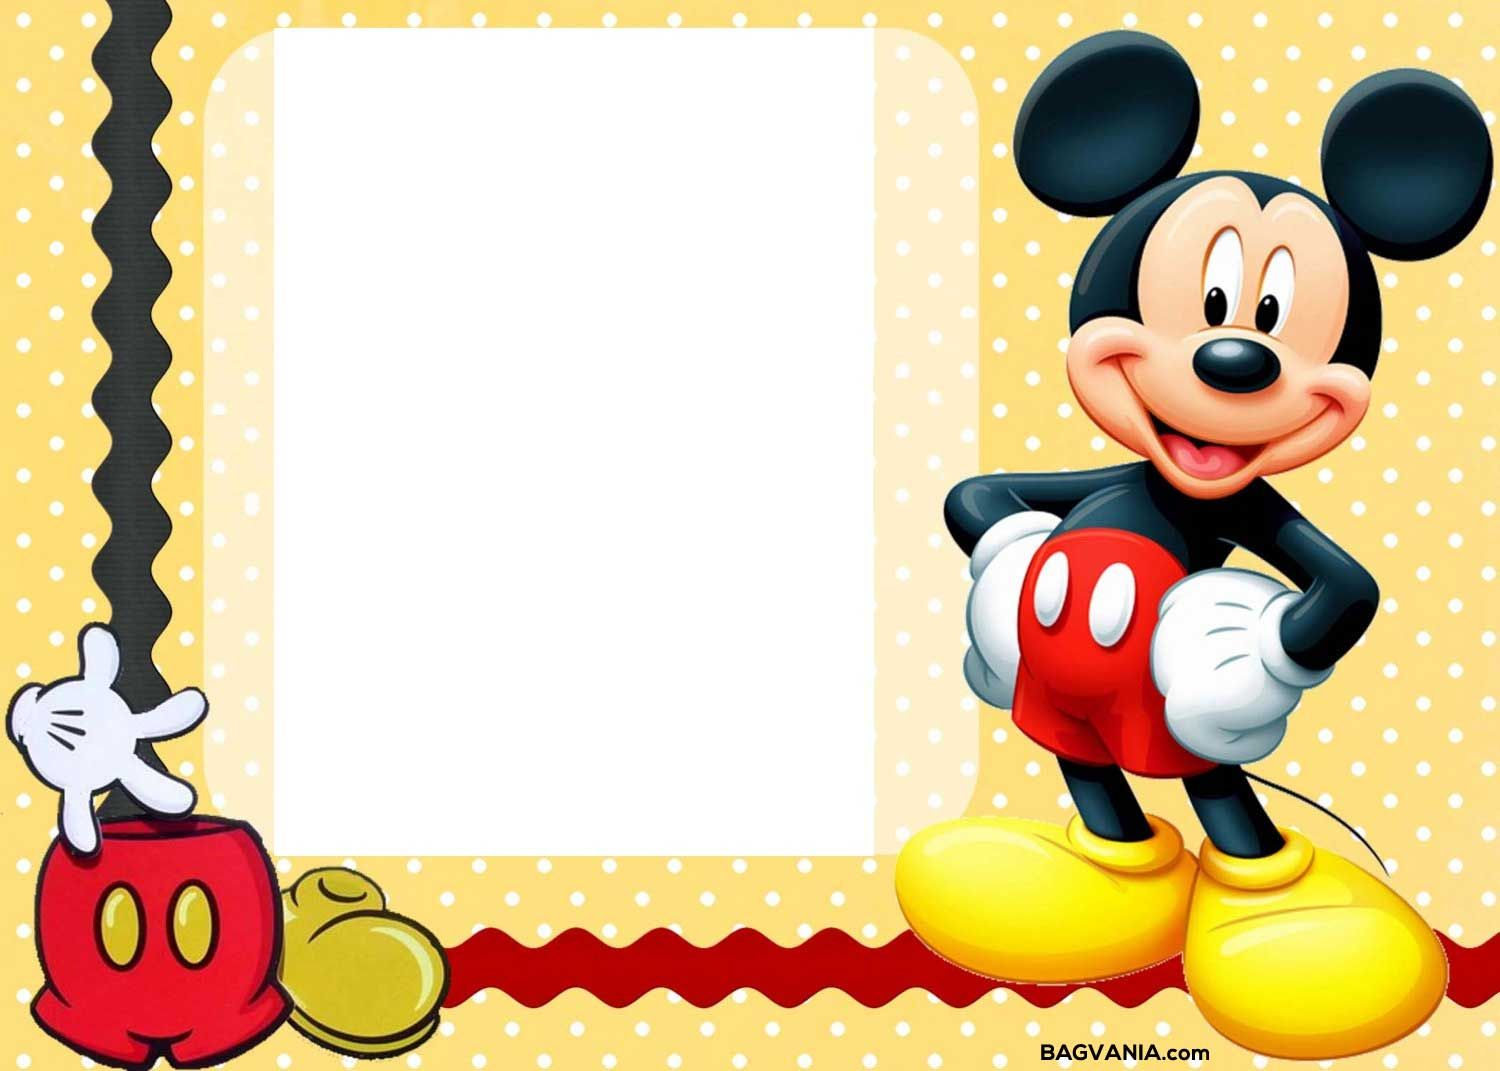 Cool free printable mickey mouse birthday invitations free cool free printable mickey mouse birthday invitations stopboris Images